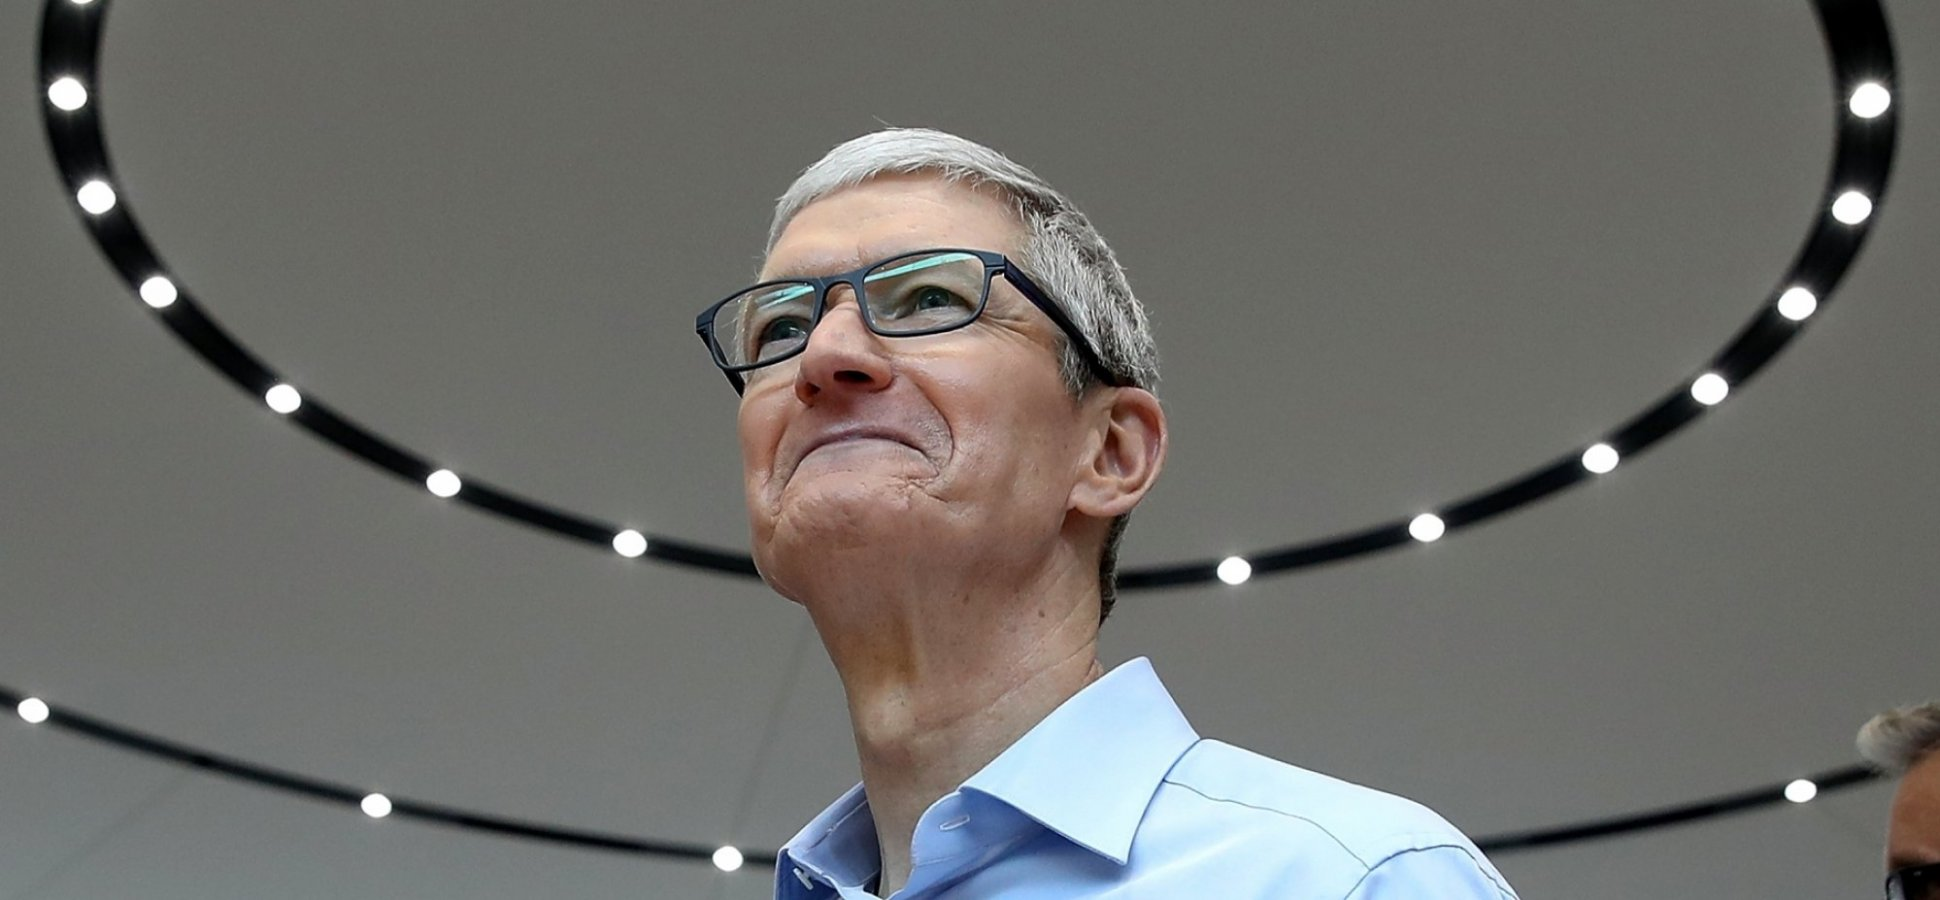 Apple CEO Tim Cook Just Nailed How to Handle Your Critics in 6 Brilliant, Pointed Words